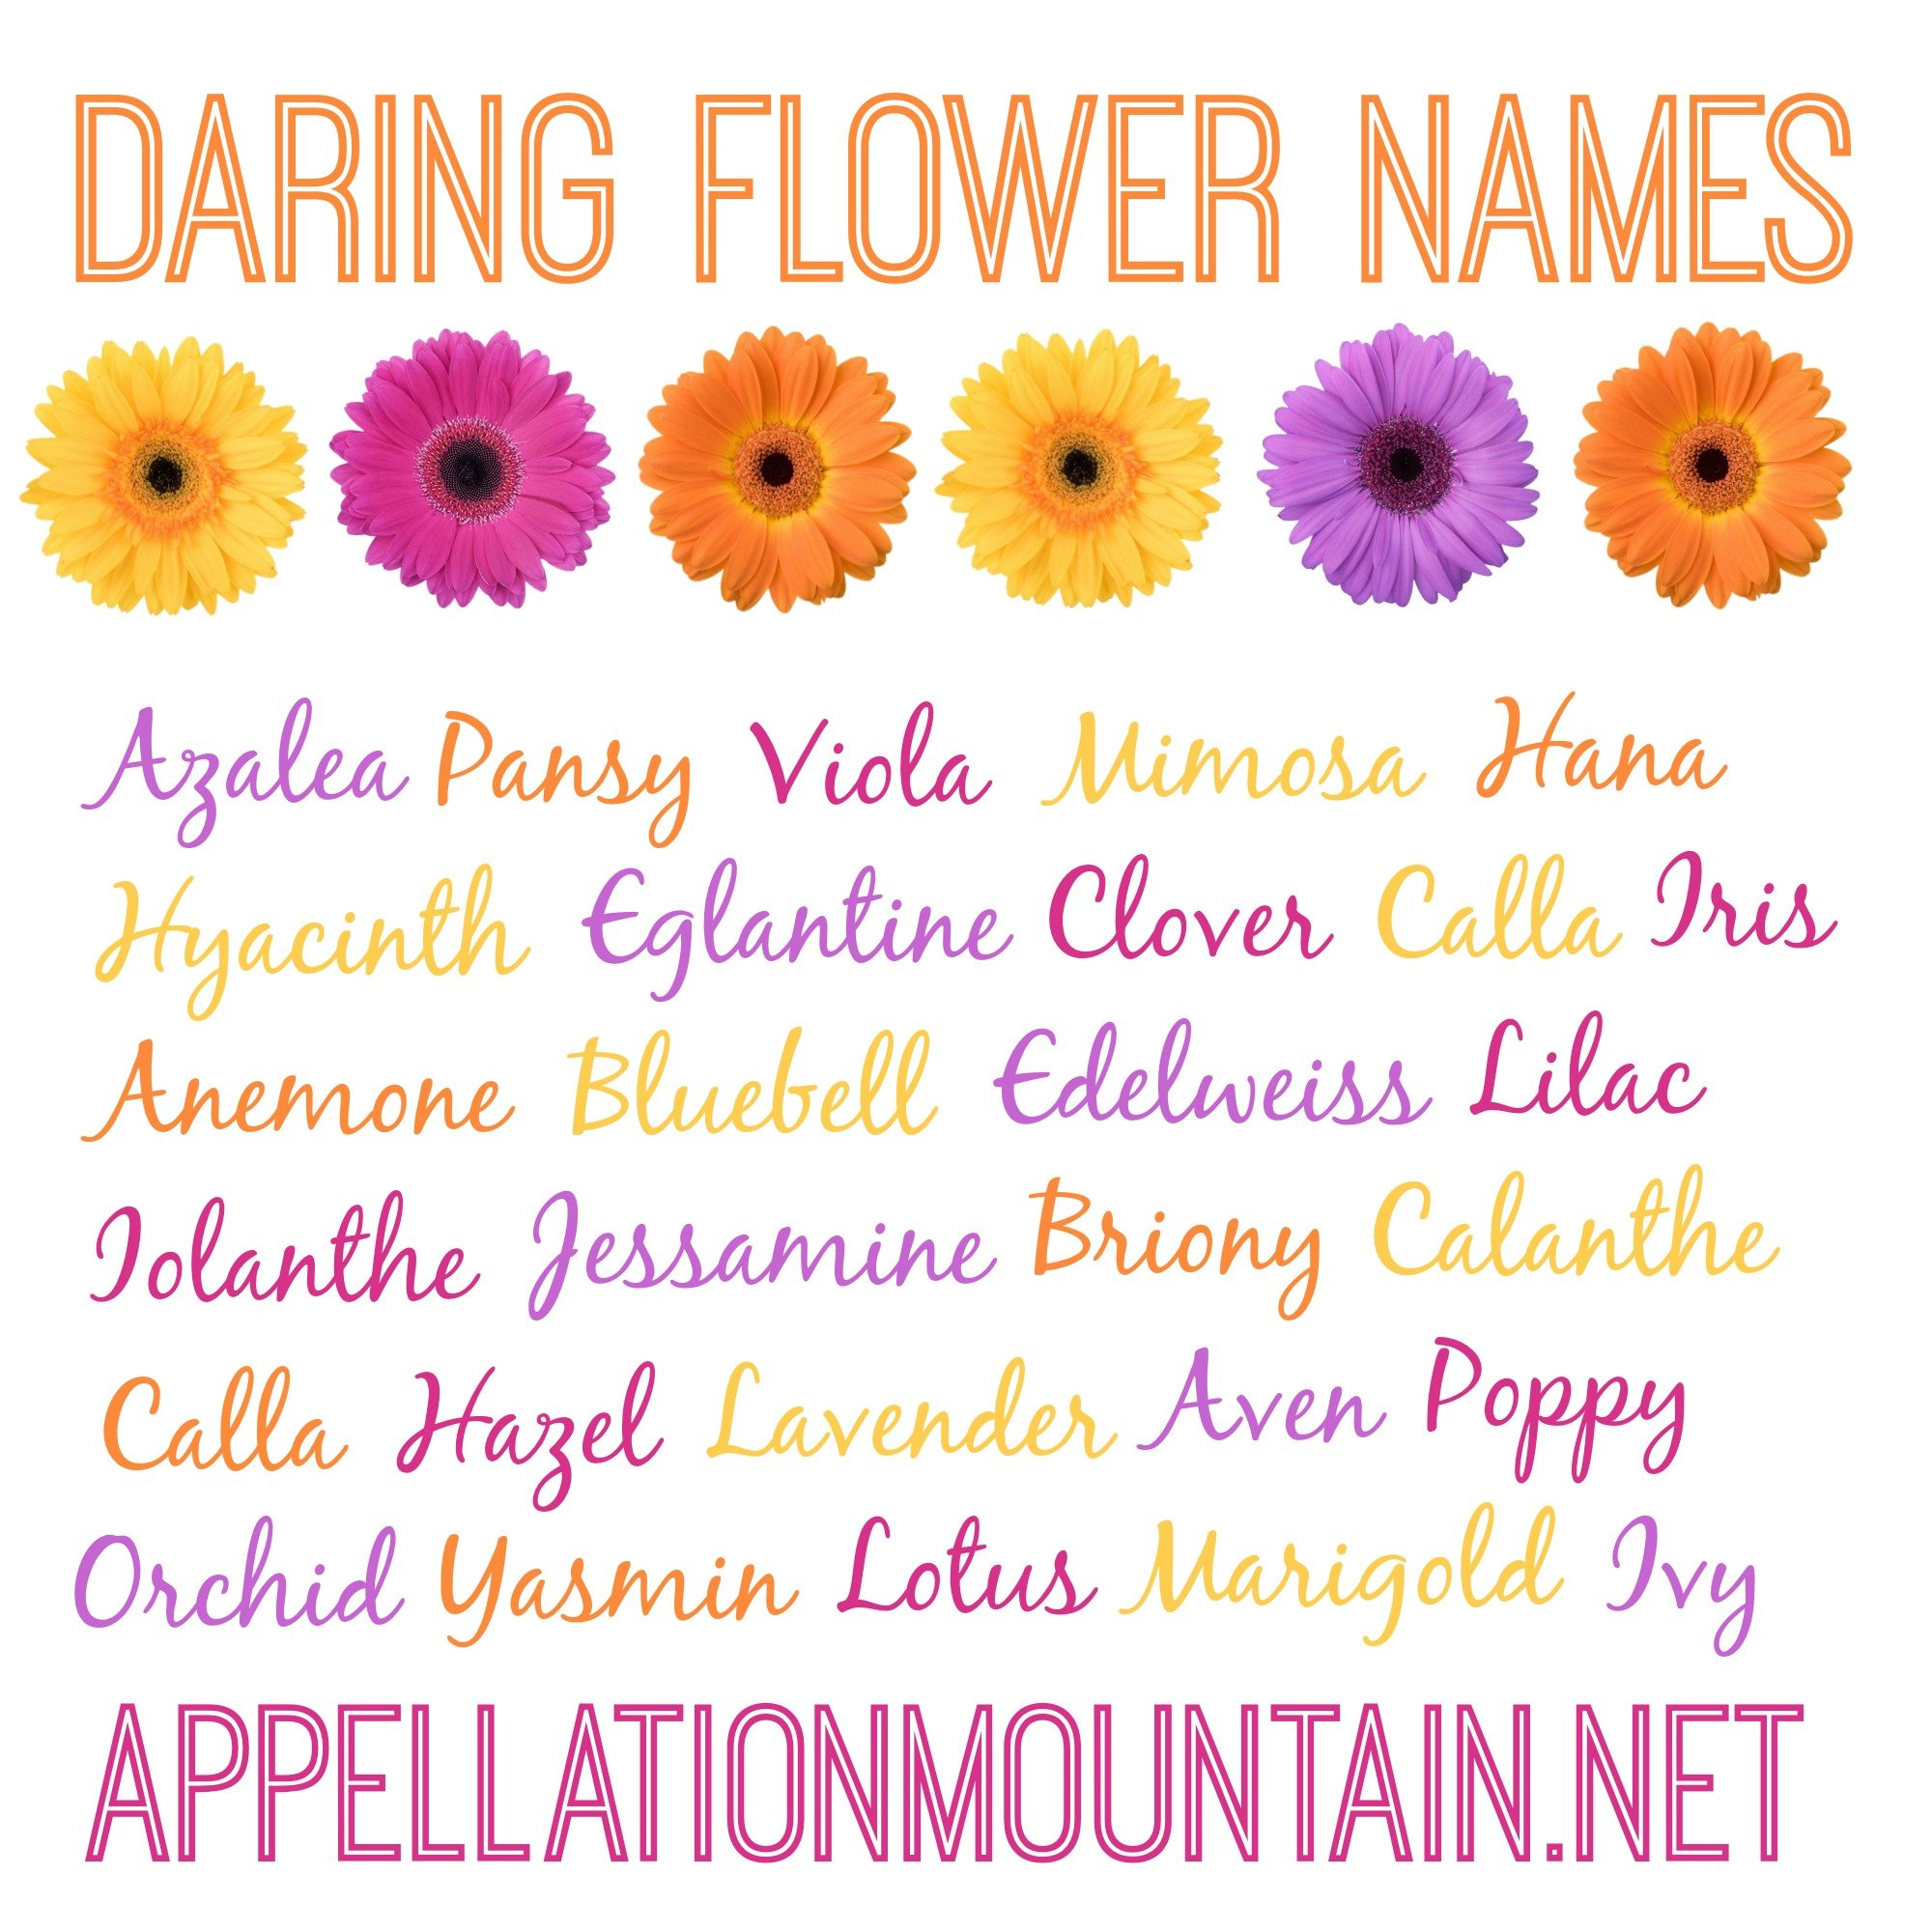 azalea and edelweiss daring flower names  appellation mountain, Beautiful flower